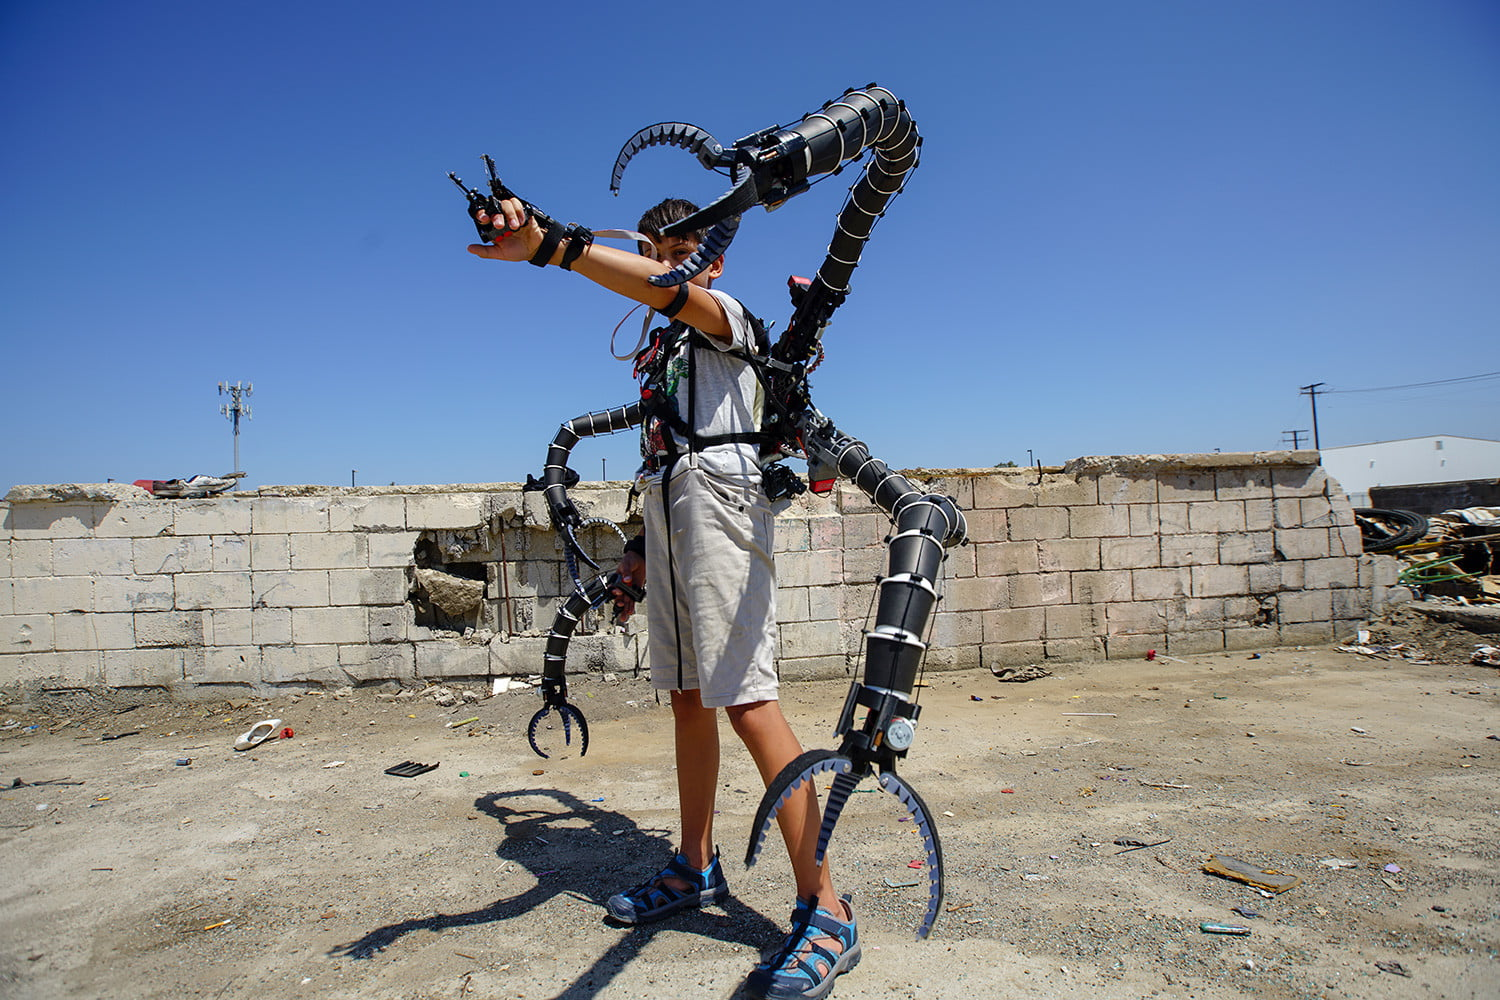 Want an extra arm? A third thumb? Check out these awesome robotic appendages